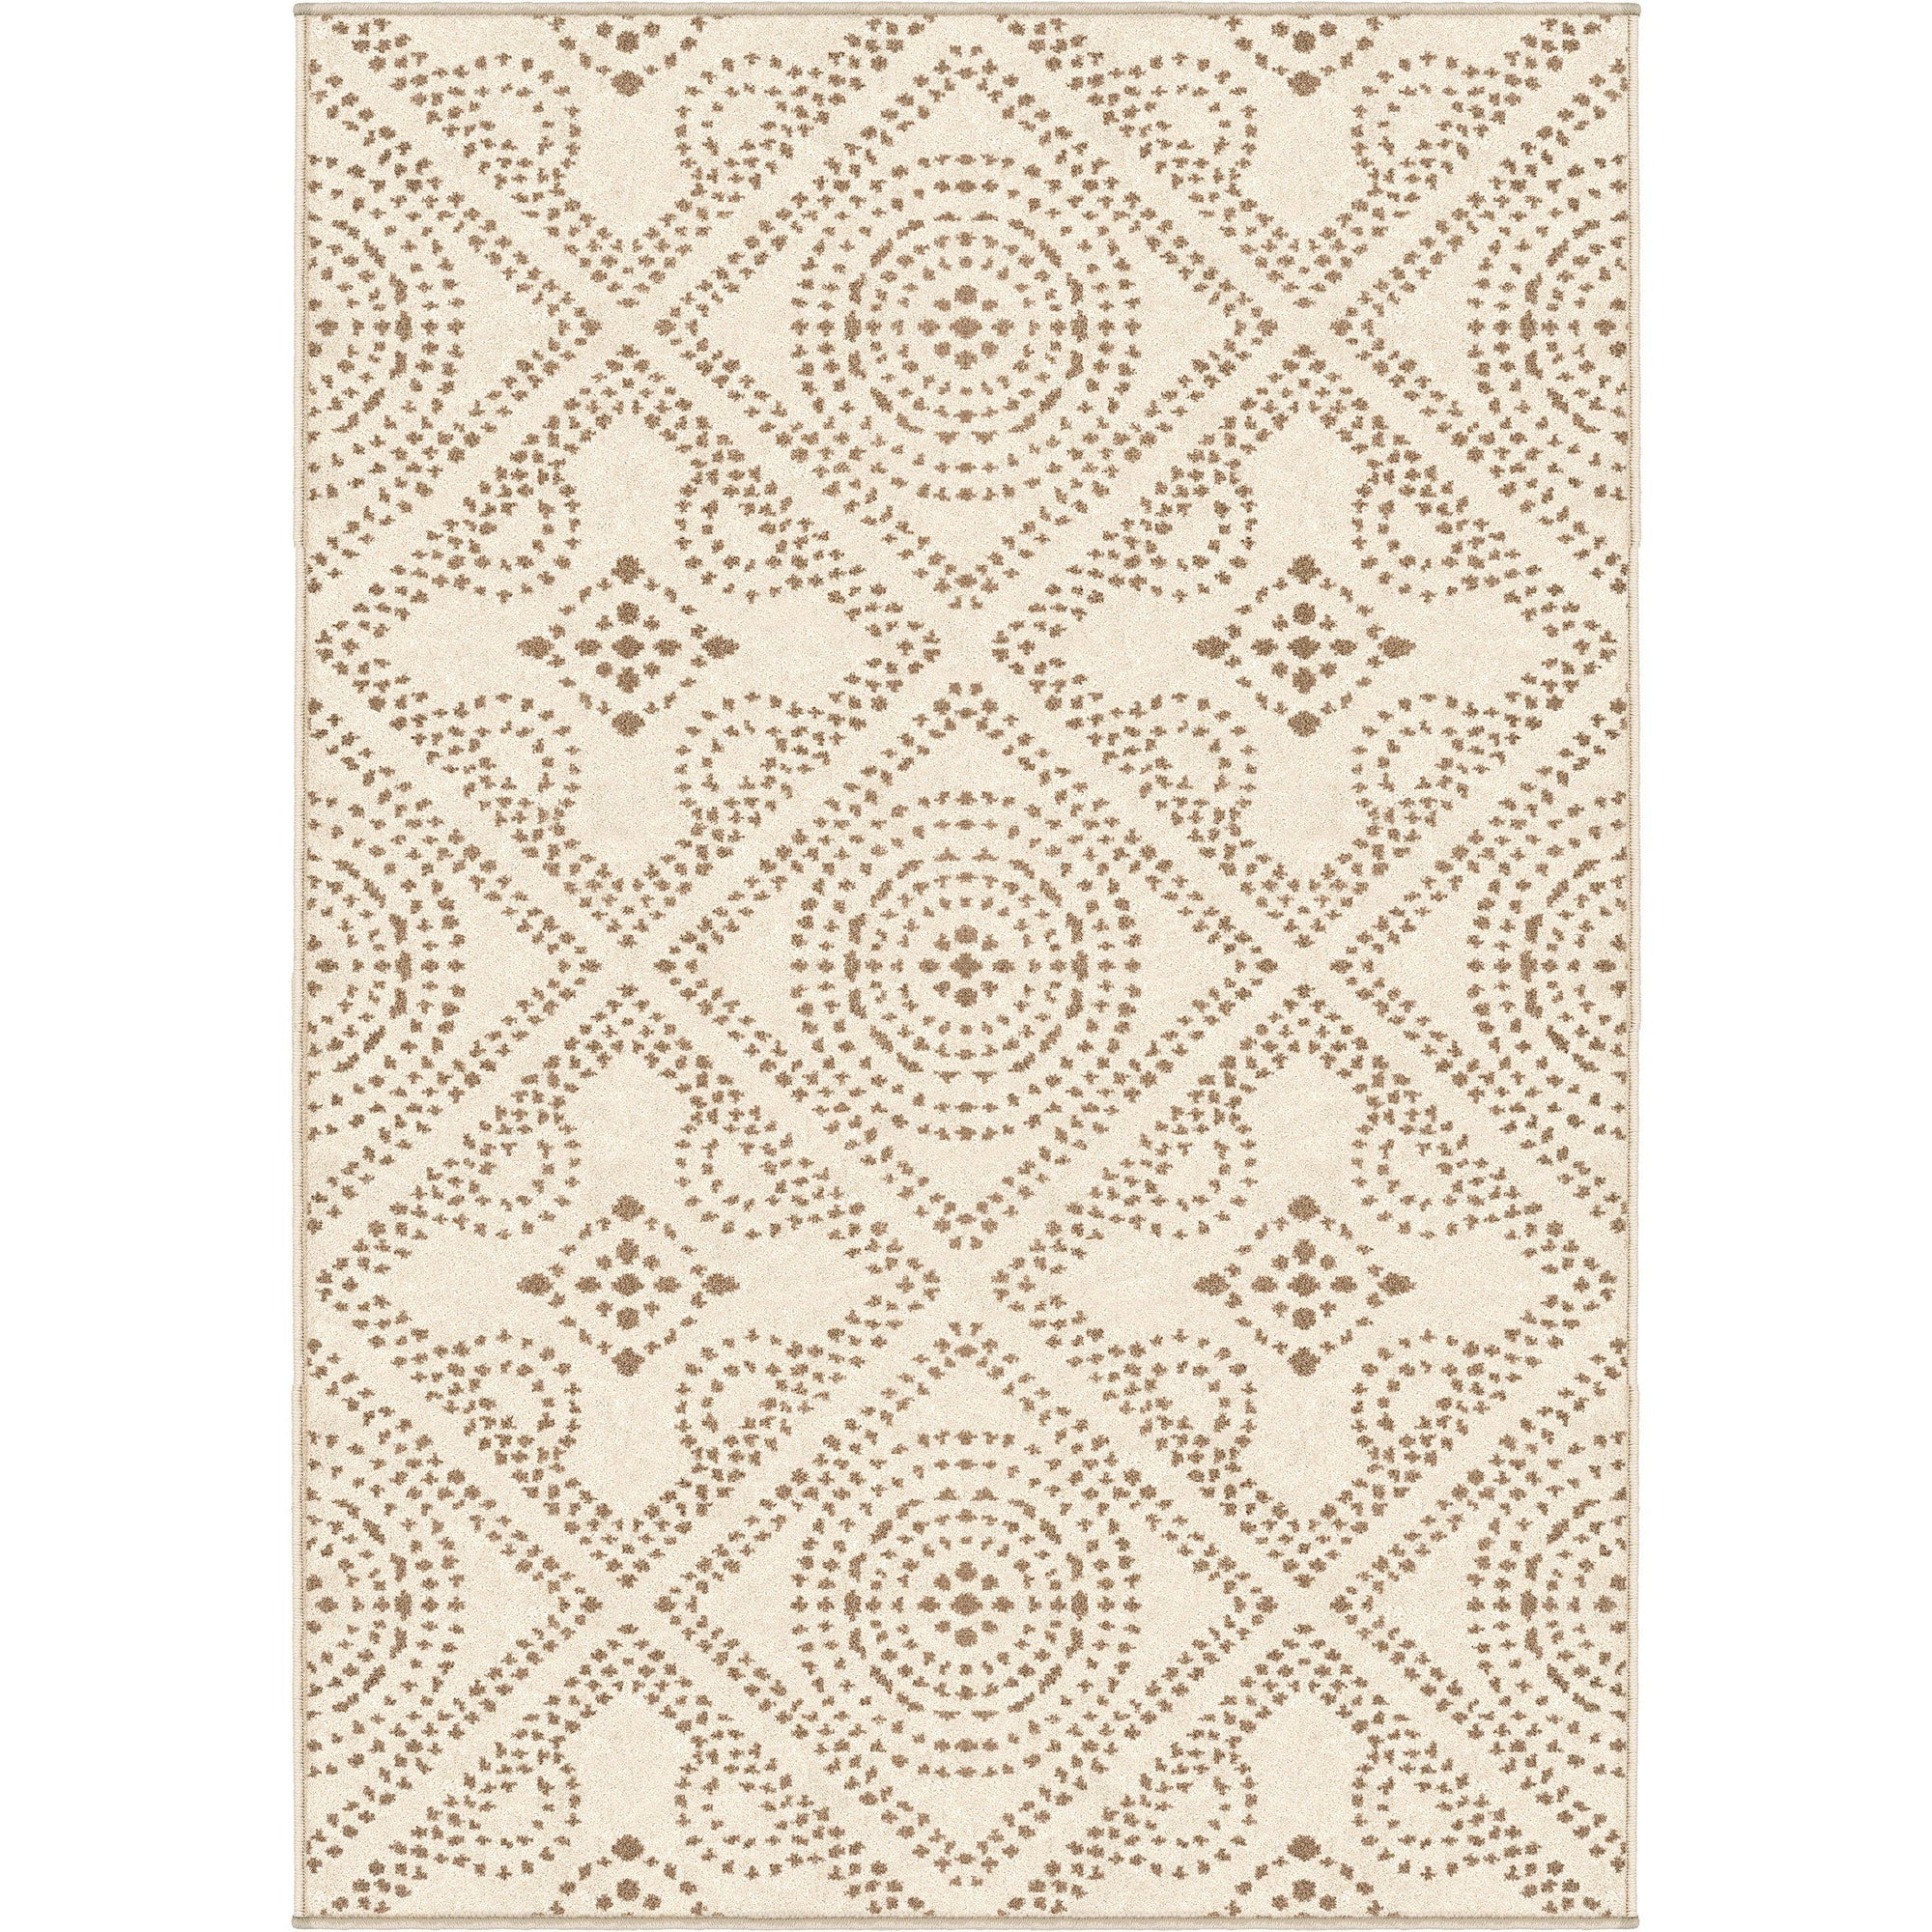 "Roundtop Camille Seashell-Area Rug-The Rug Truck-5'1"" x 7'6""-The Rug Truck"